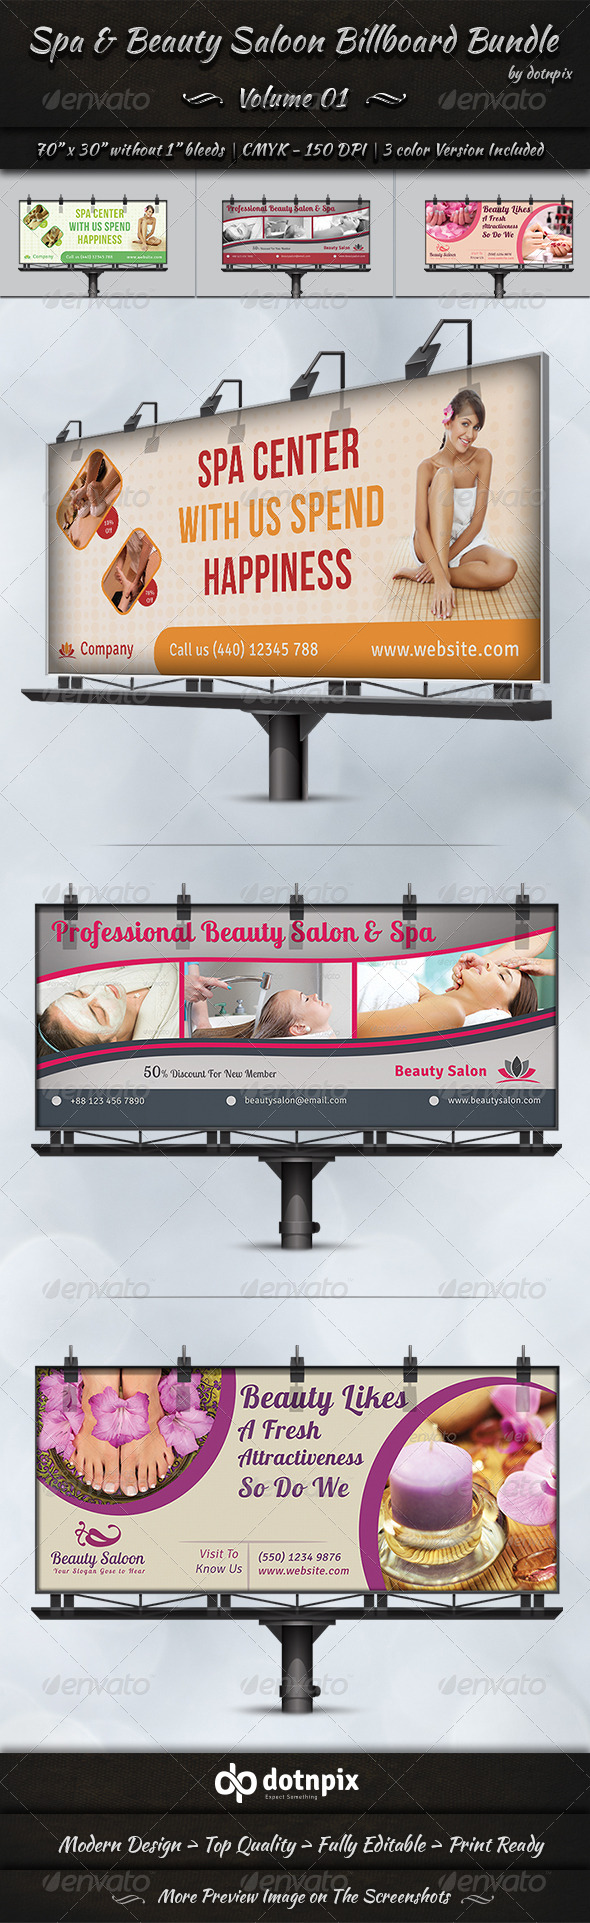 Spa Beauty Saloon Billboard Bundle Volume 1 Signage